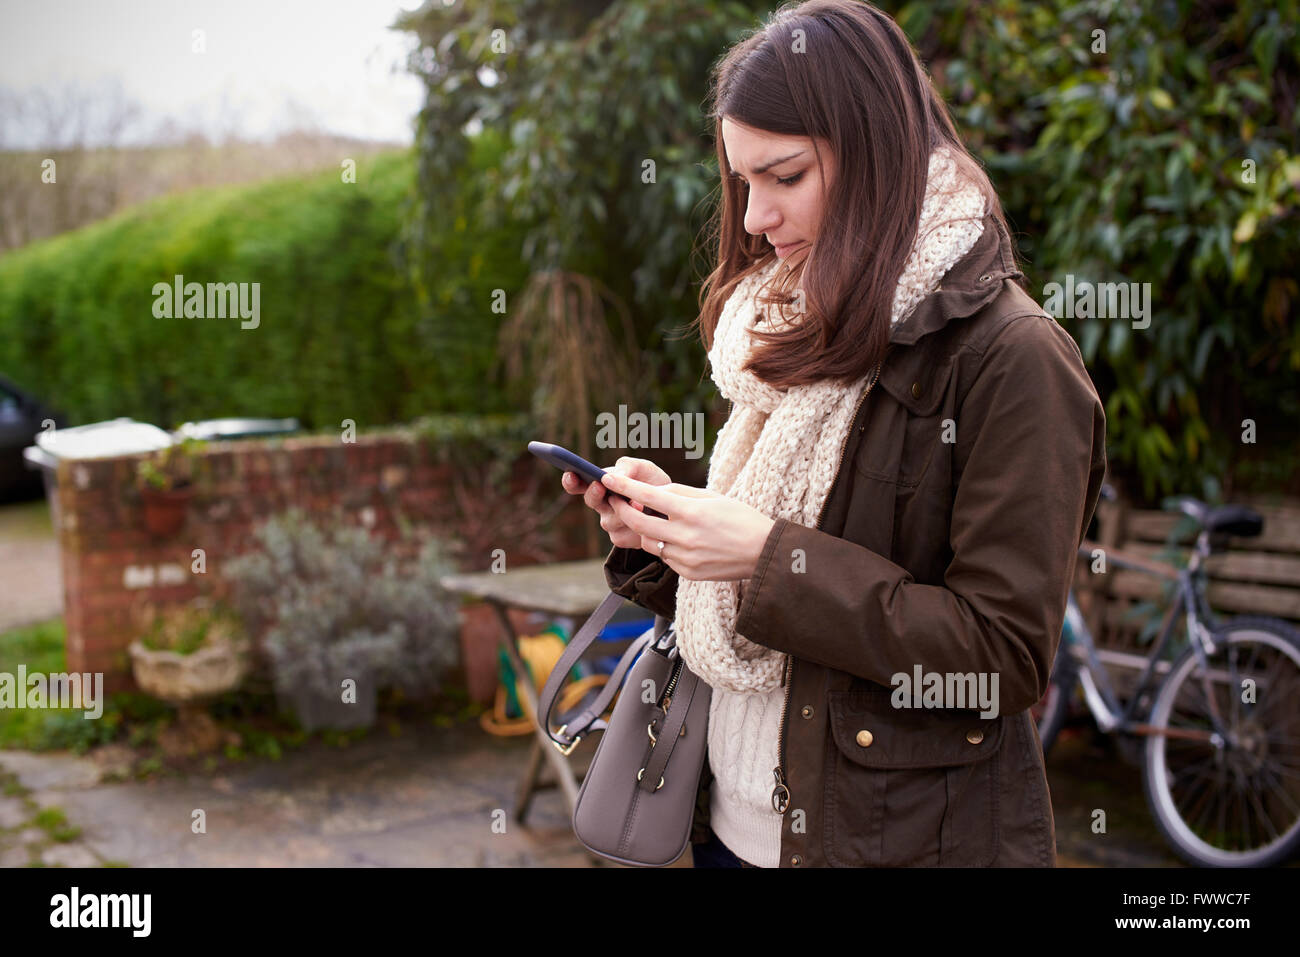 Young Woman Reading Text Messaging Outdoors - Stock Image